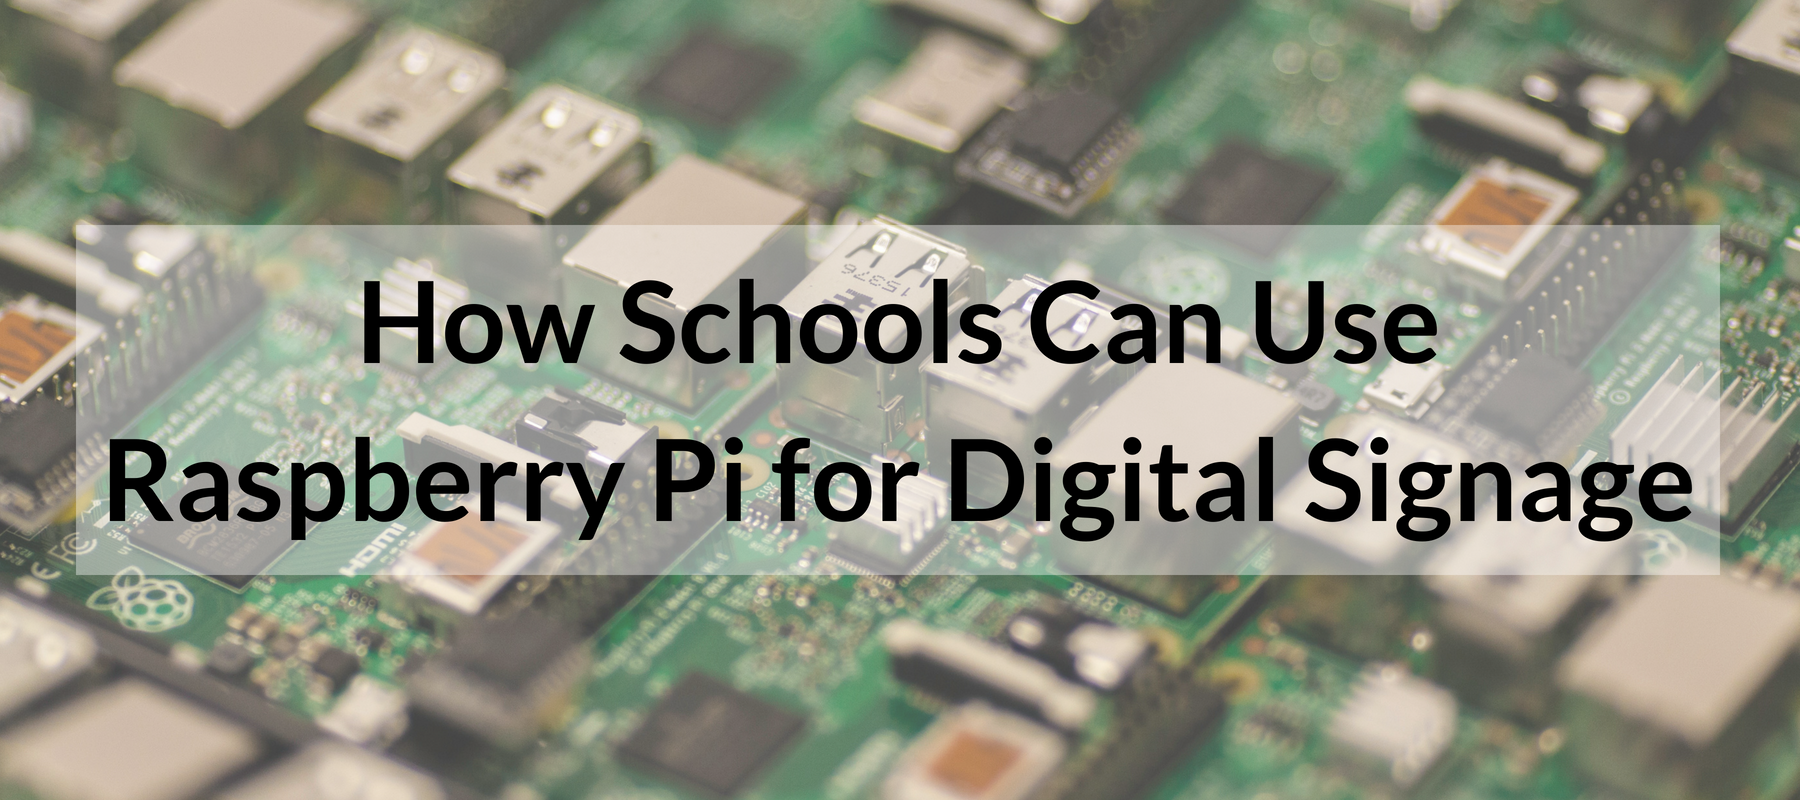 How Schools Can Use Raspberry Pi for Digital Signage